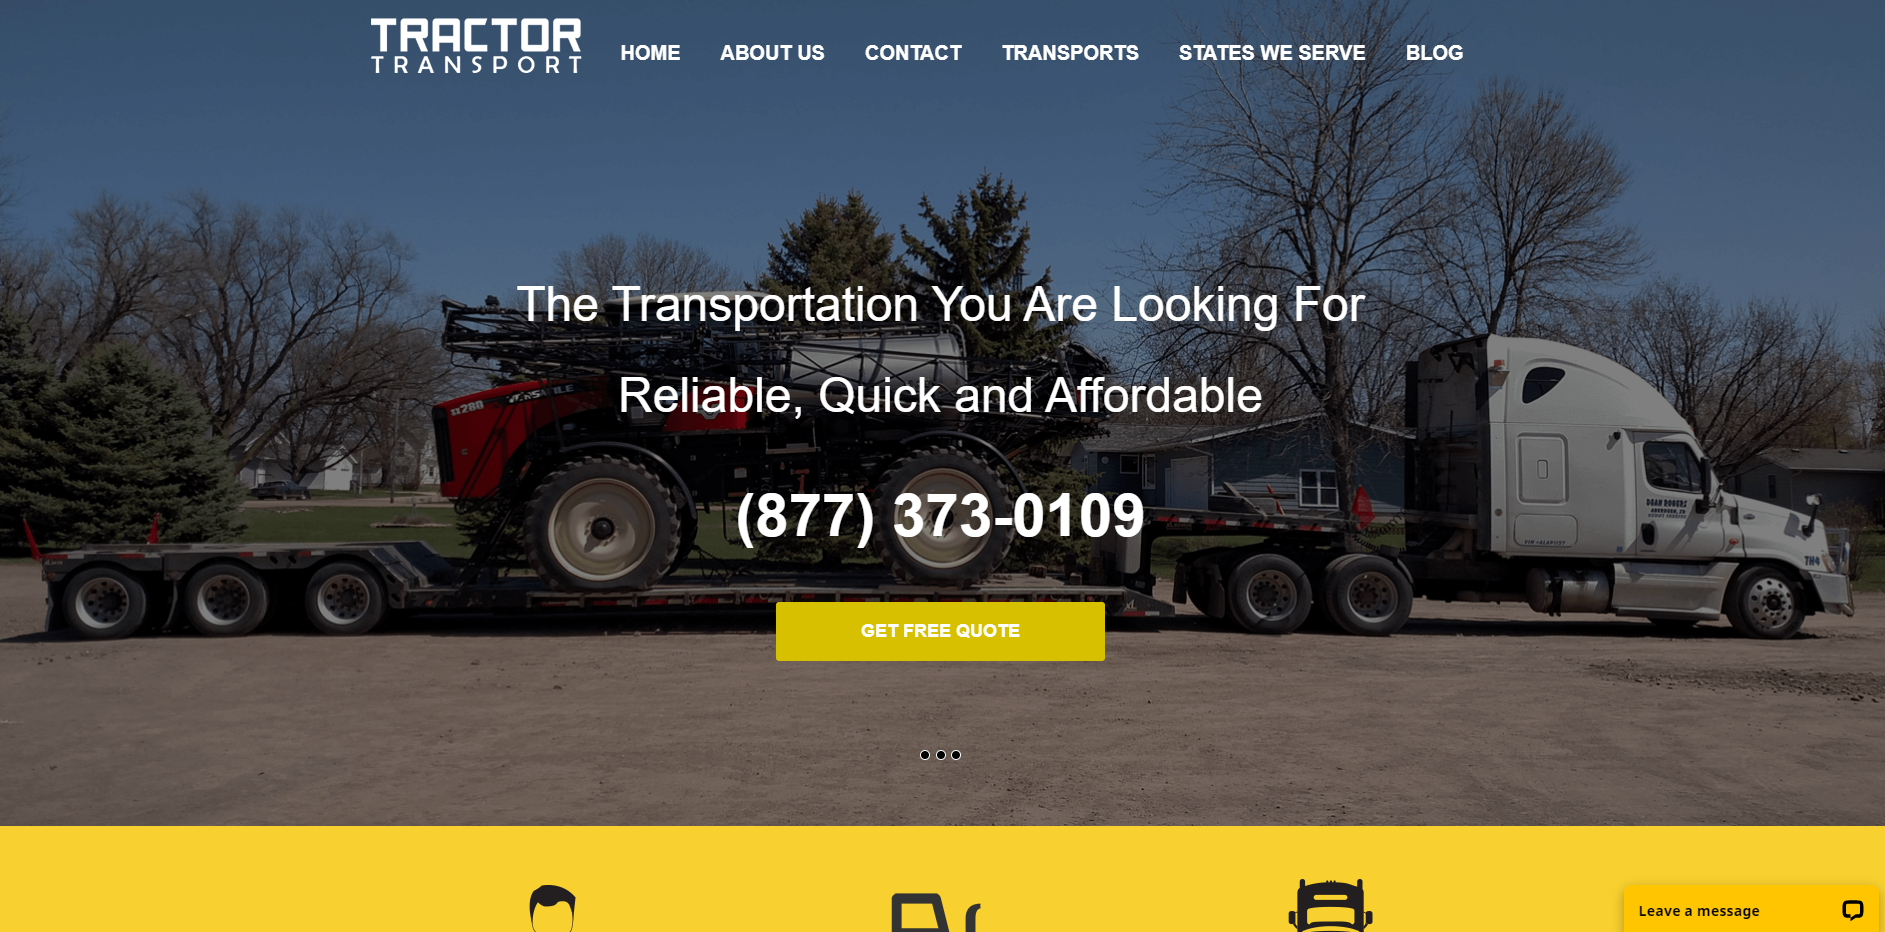 Tractor Transport